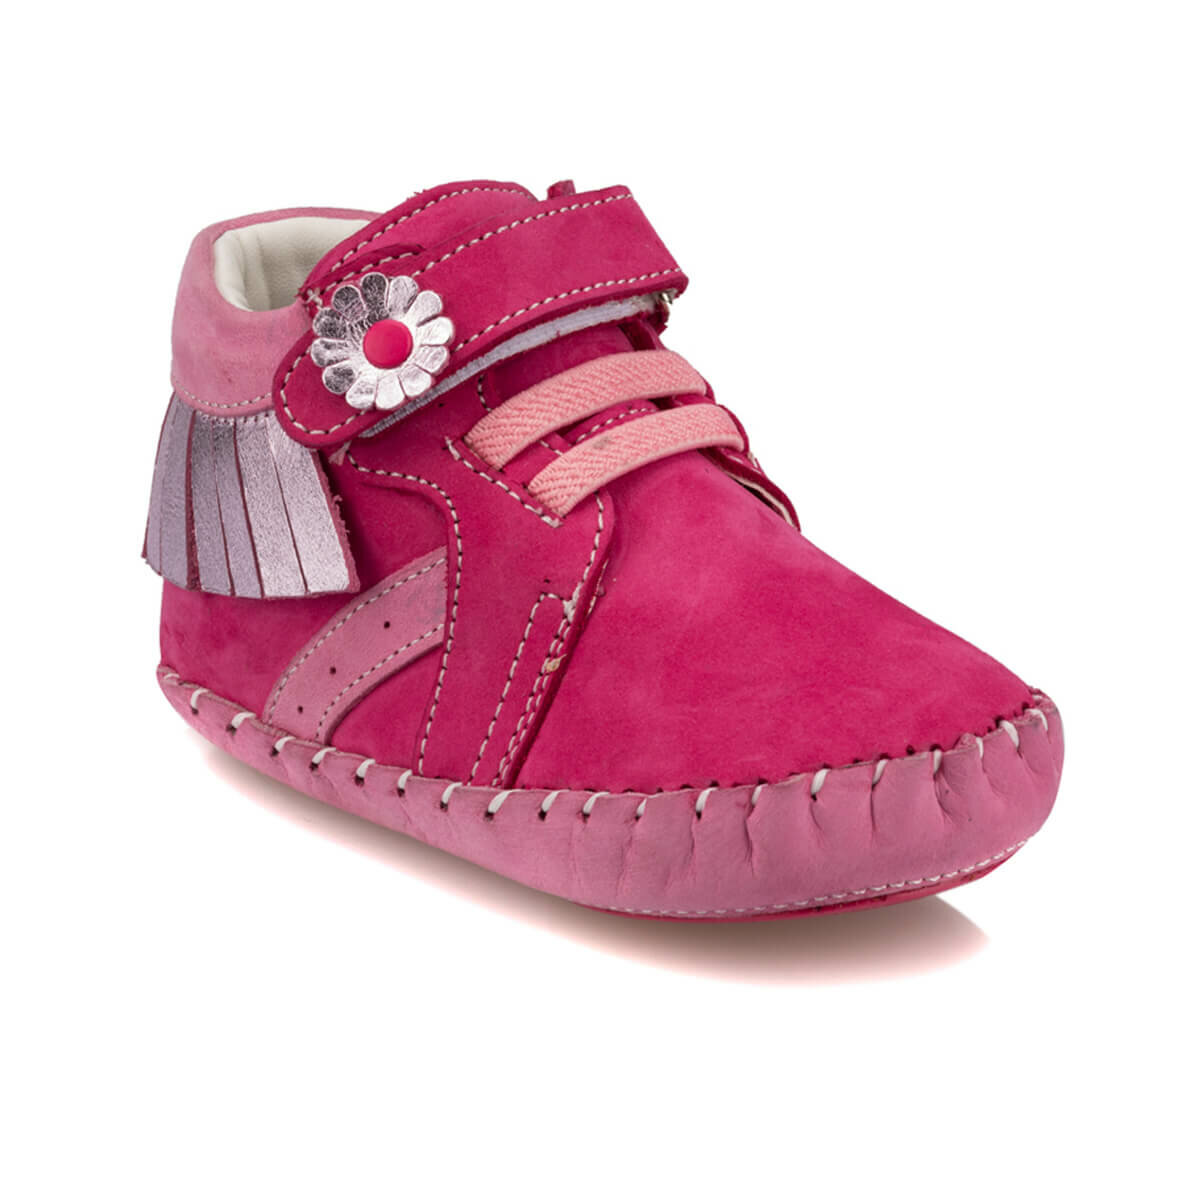 FLO 92. 511736.I Fuchsia Girls Children Boots Polaris